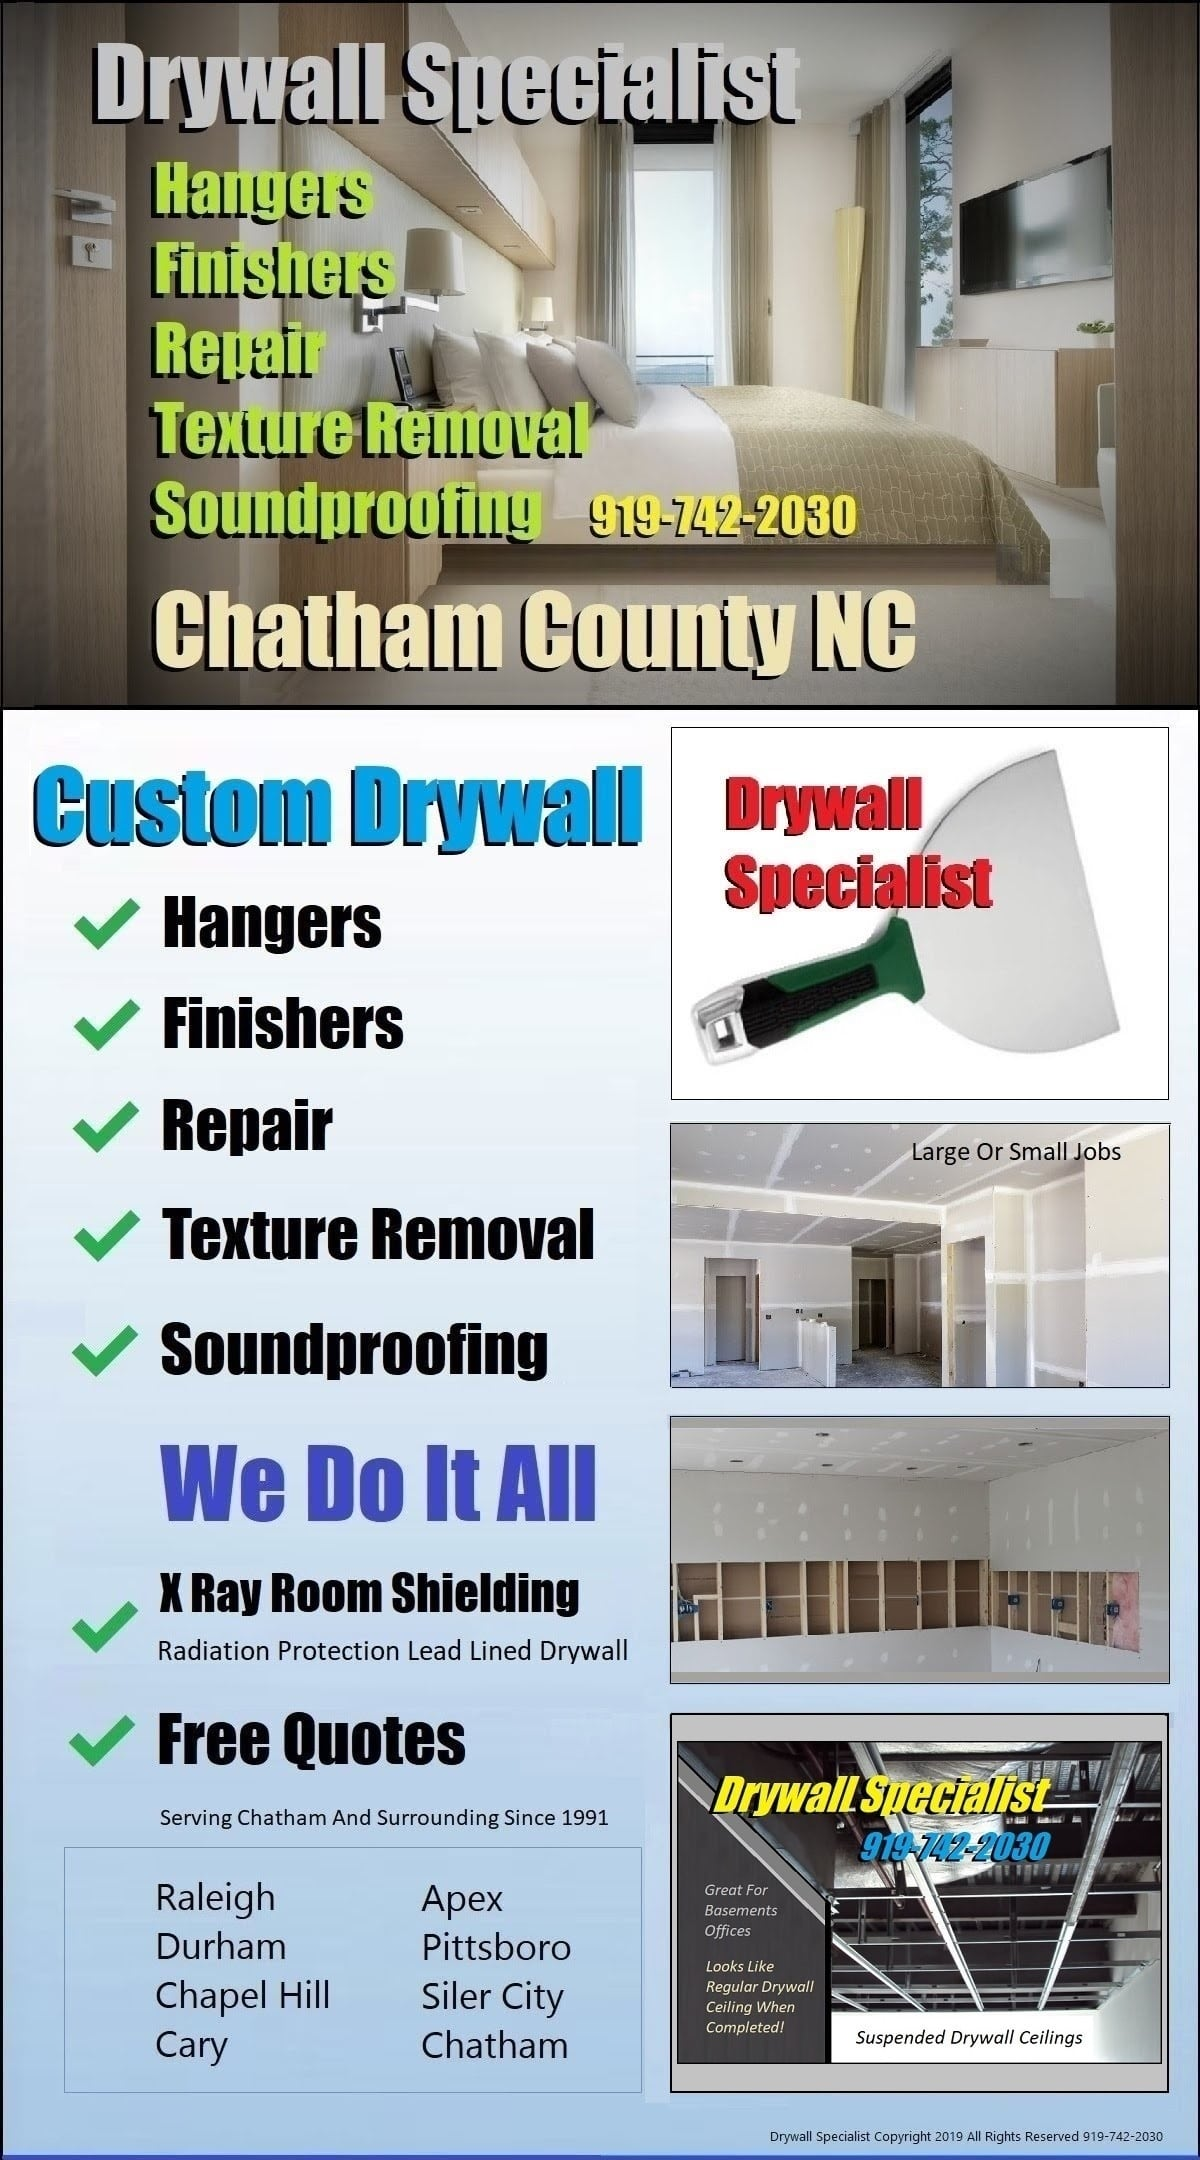 Nextdoor Wallboard Water Damage Repair Contractor | Pittsboro North Carolina